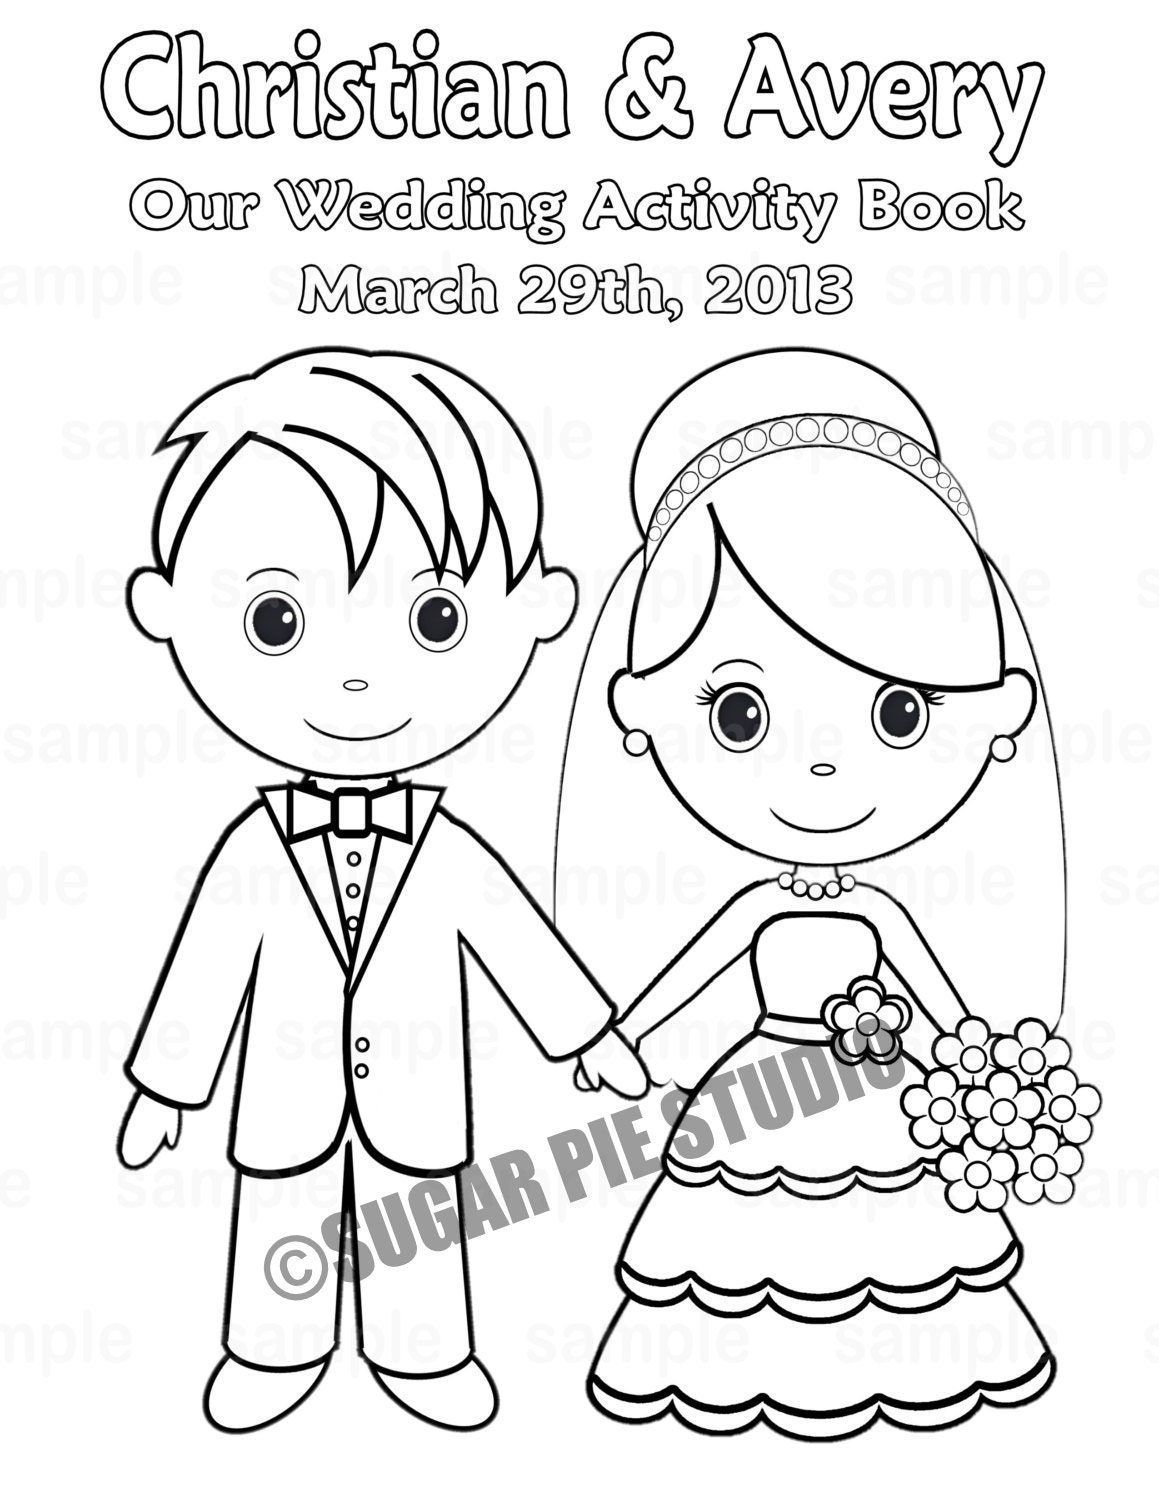 Printable personalized wedding coloring activity book favor for Wedding anniversary coloring pages